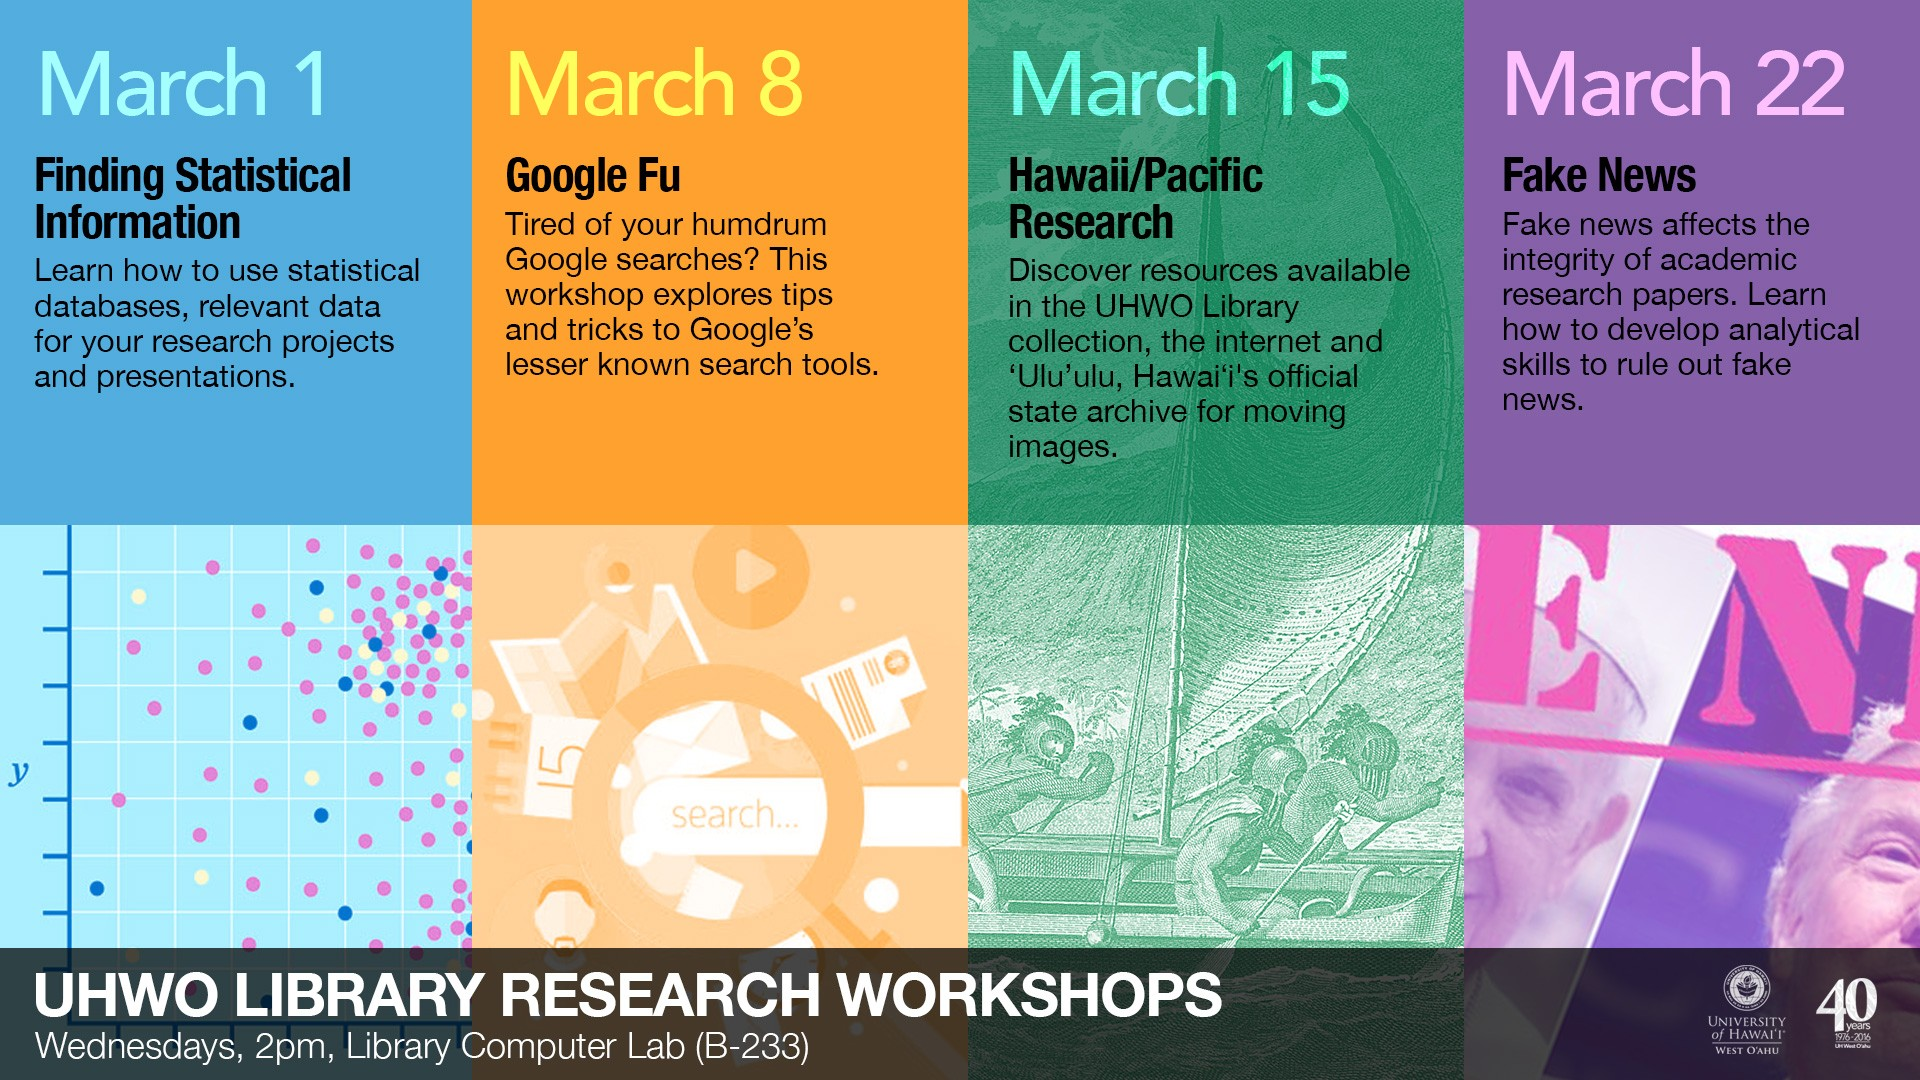 020 Libraryworkshopsmar2017 Ds Google Researchs Fearsome Research Papers Earth Mapreduce Deepmind 1920